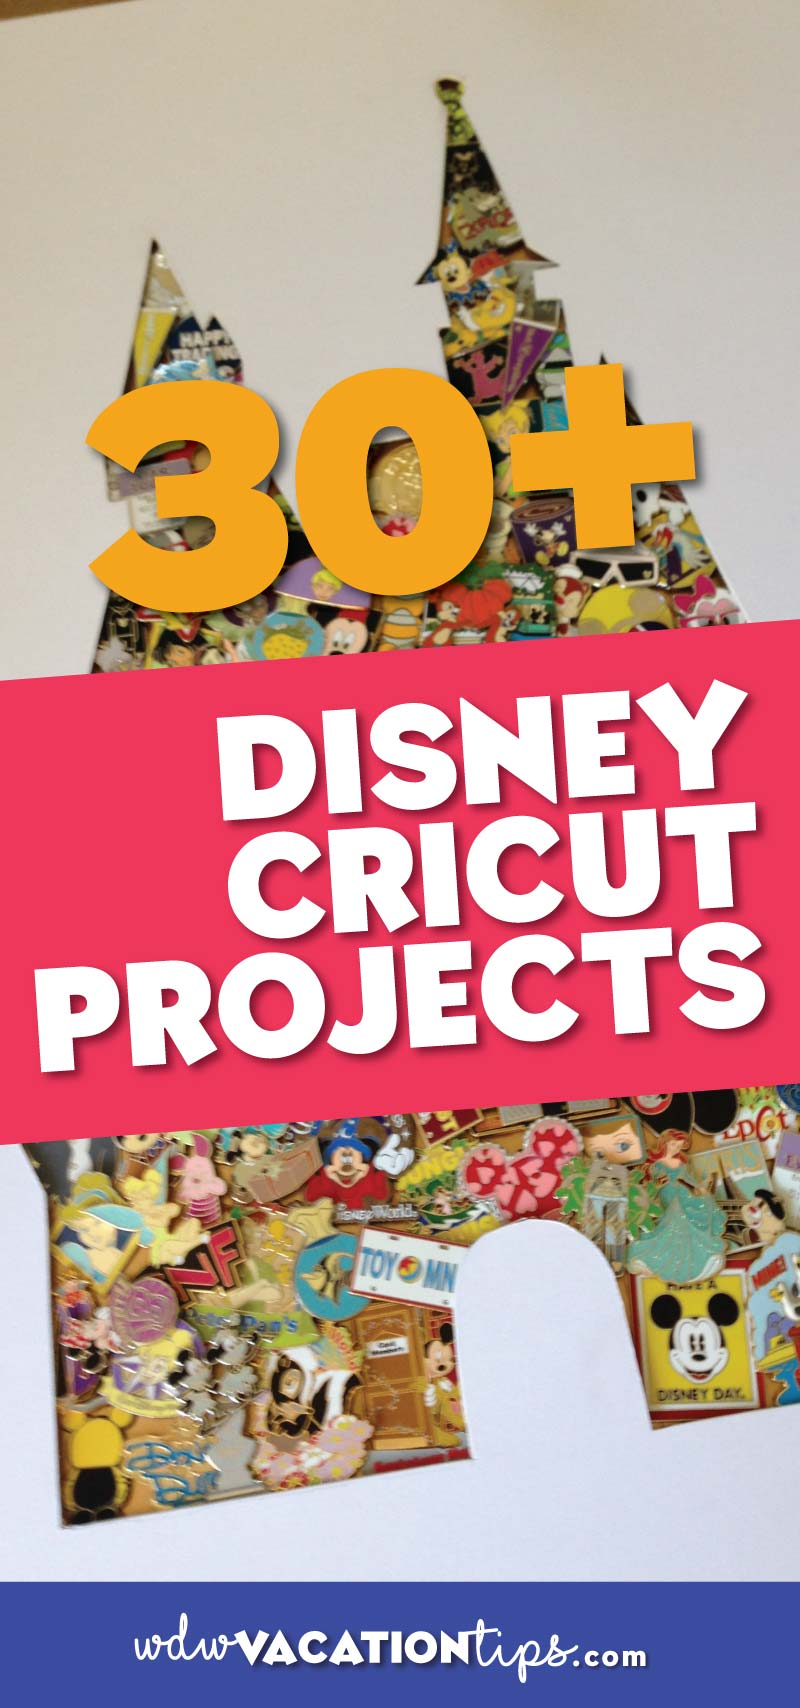 32 Disney Cricut Projects You Need To Make Wdw Vacation Tips